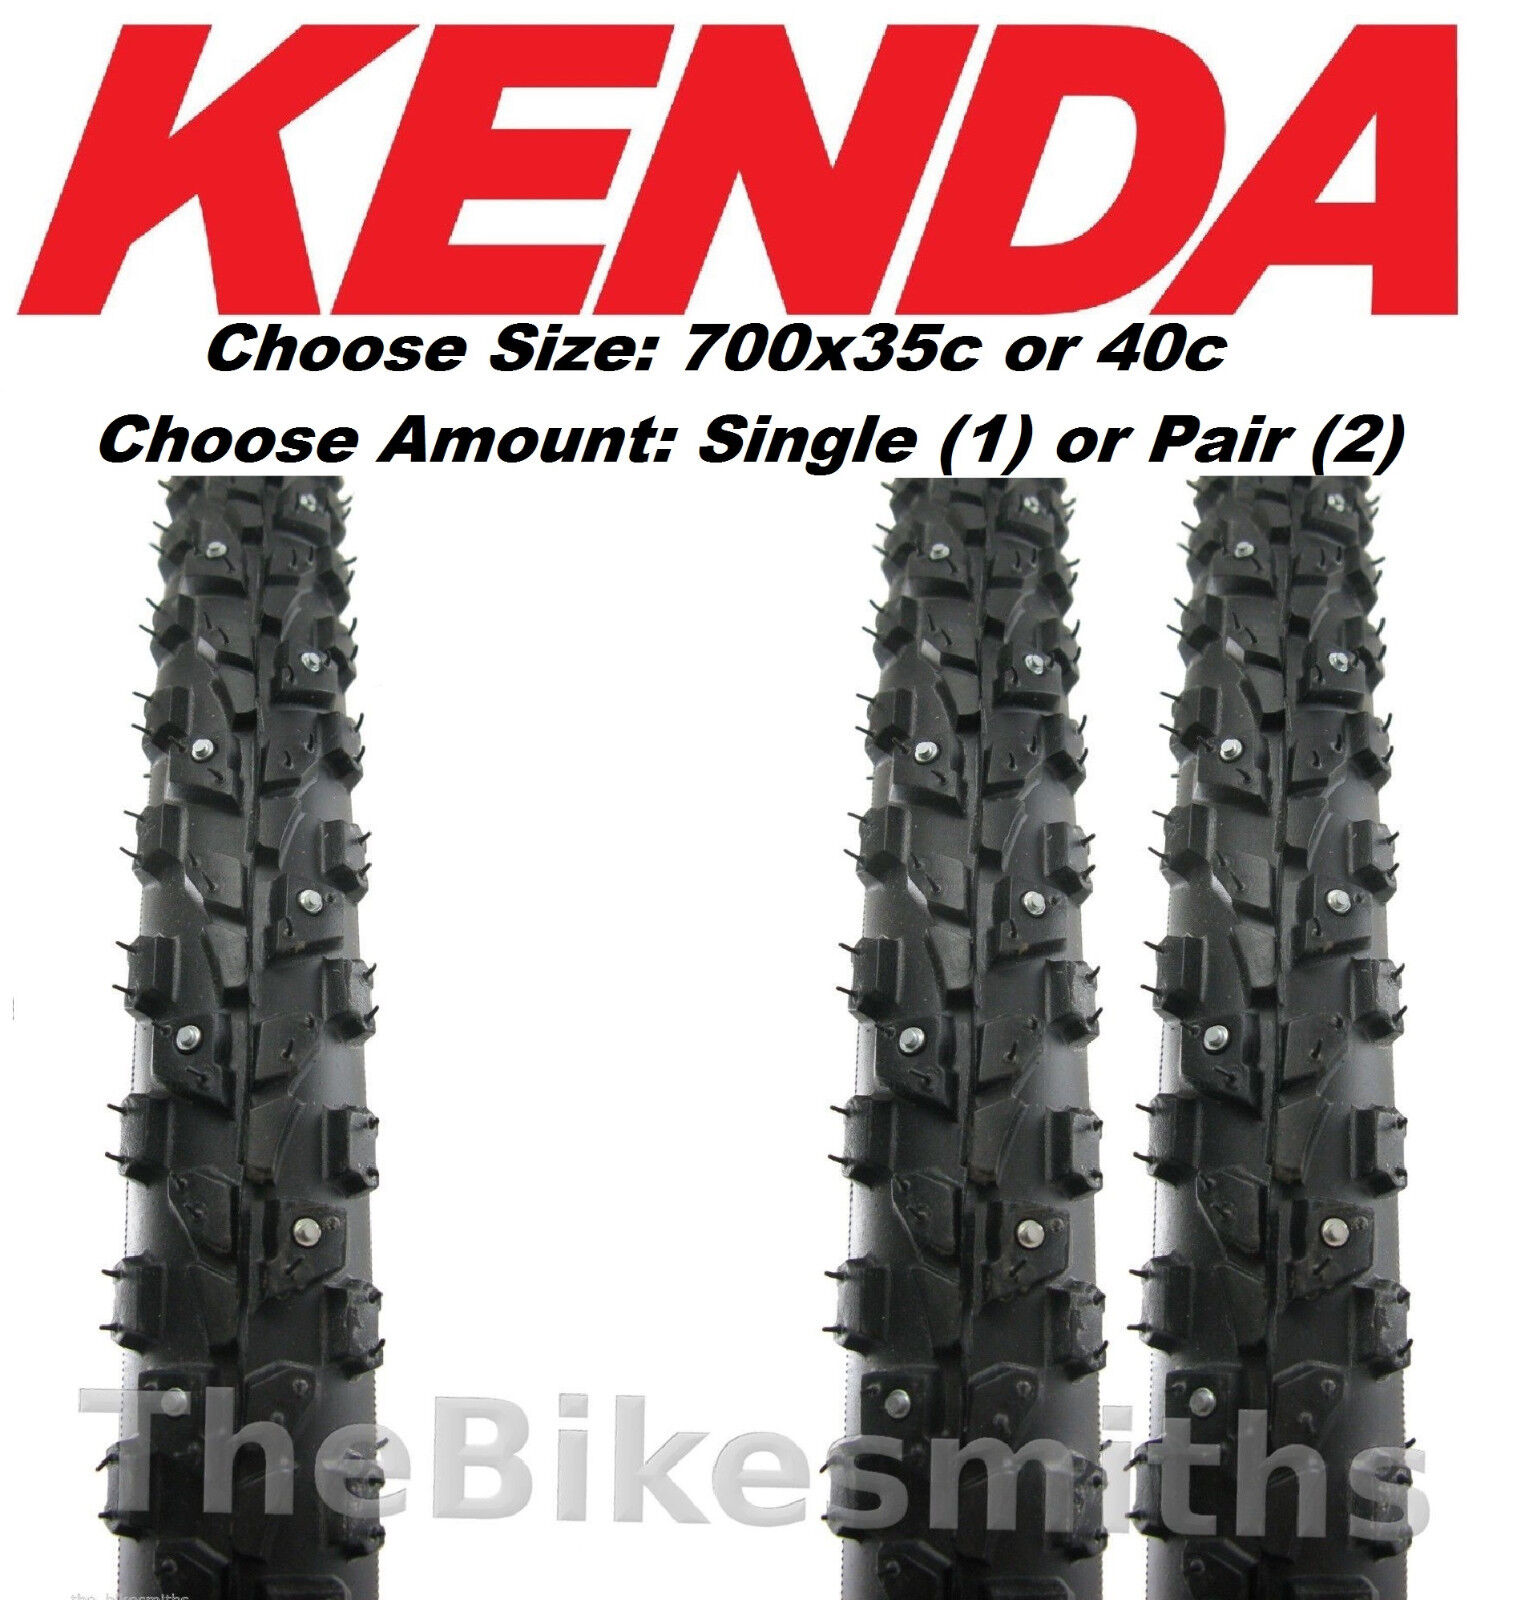 1 or 2Pak Kenda Klondike Skinny 700 X 35 or  40c Winter Ice Studded Bike Tire 29   all goods are specials